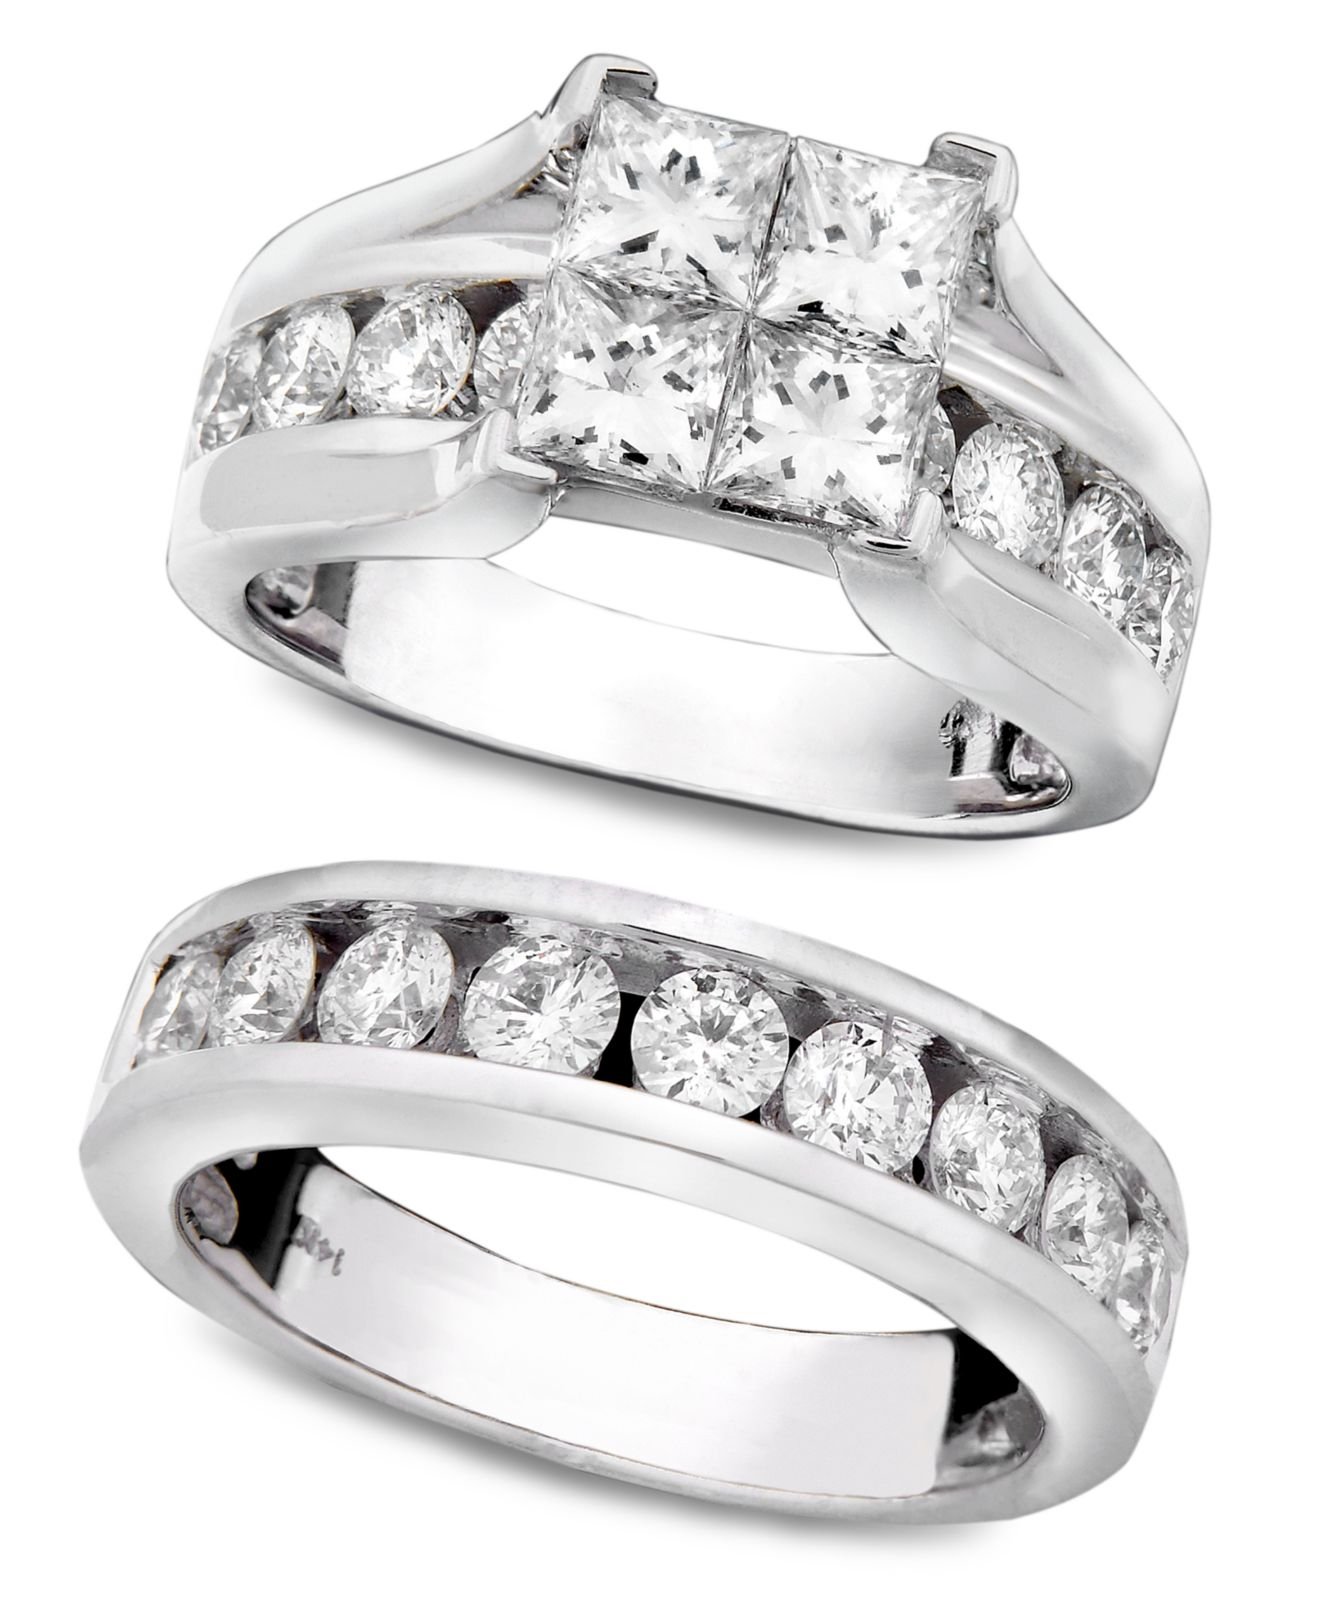 Lyst Macy S Engagement Ring And Wedding Band 14k White Gold And